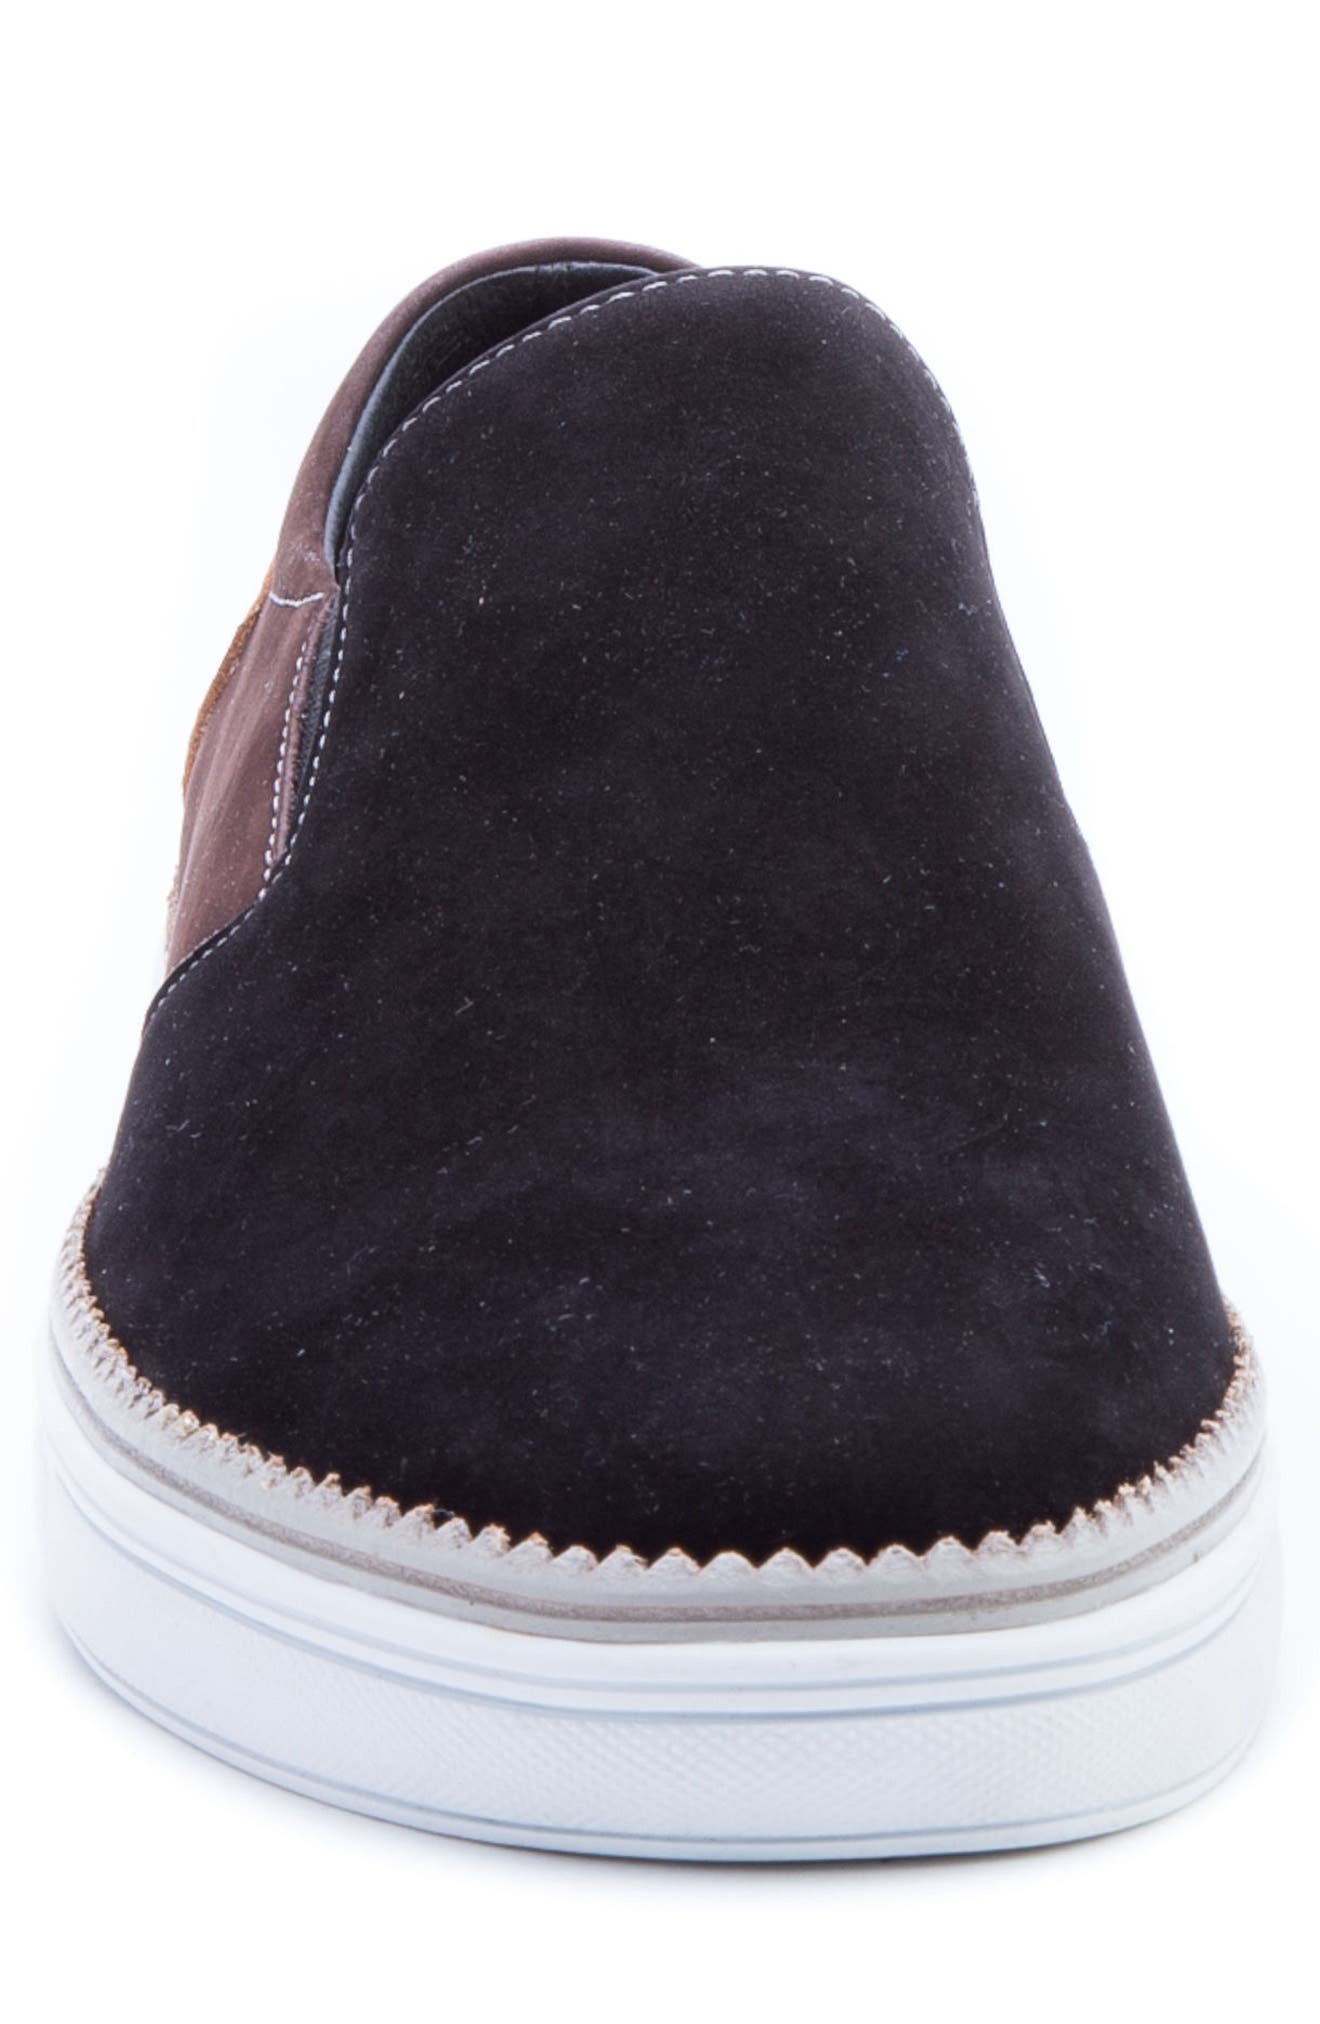 Rivera Colorblocked Slip-On Sneaker,                             Alternate thumbnail 4, color,                             BLACK SUEDE